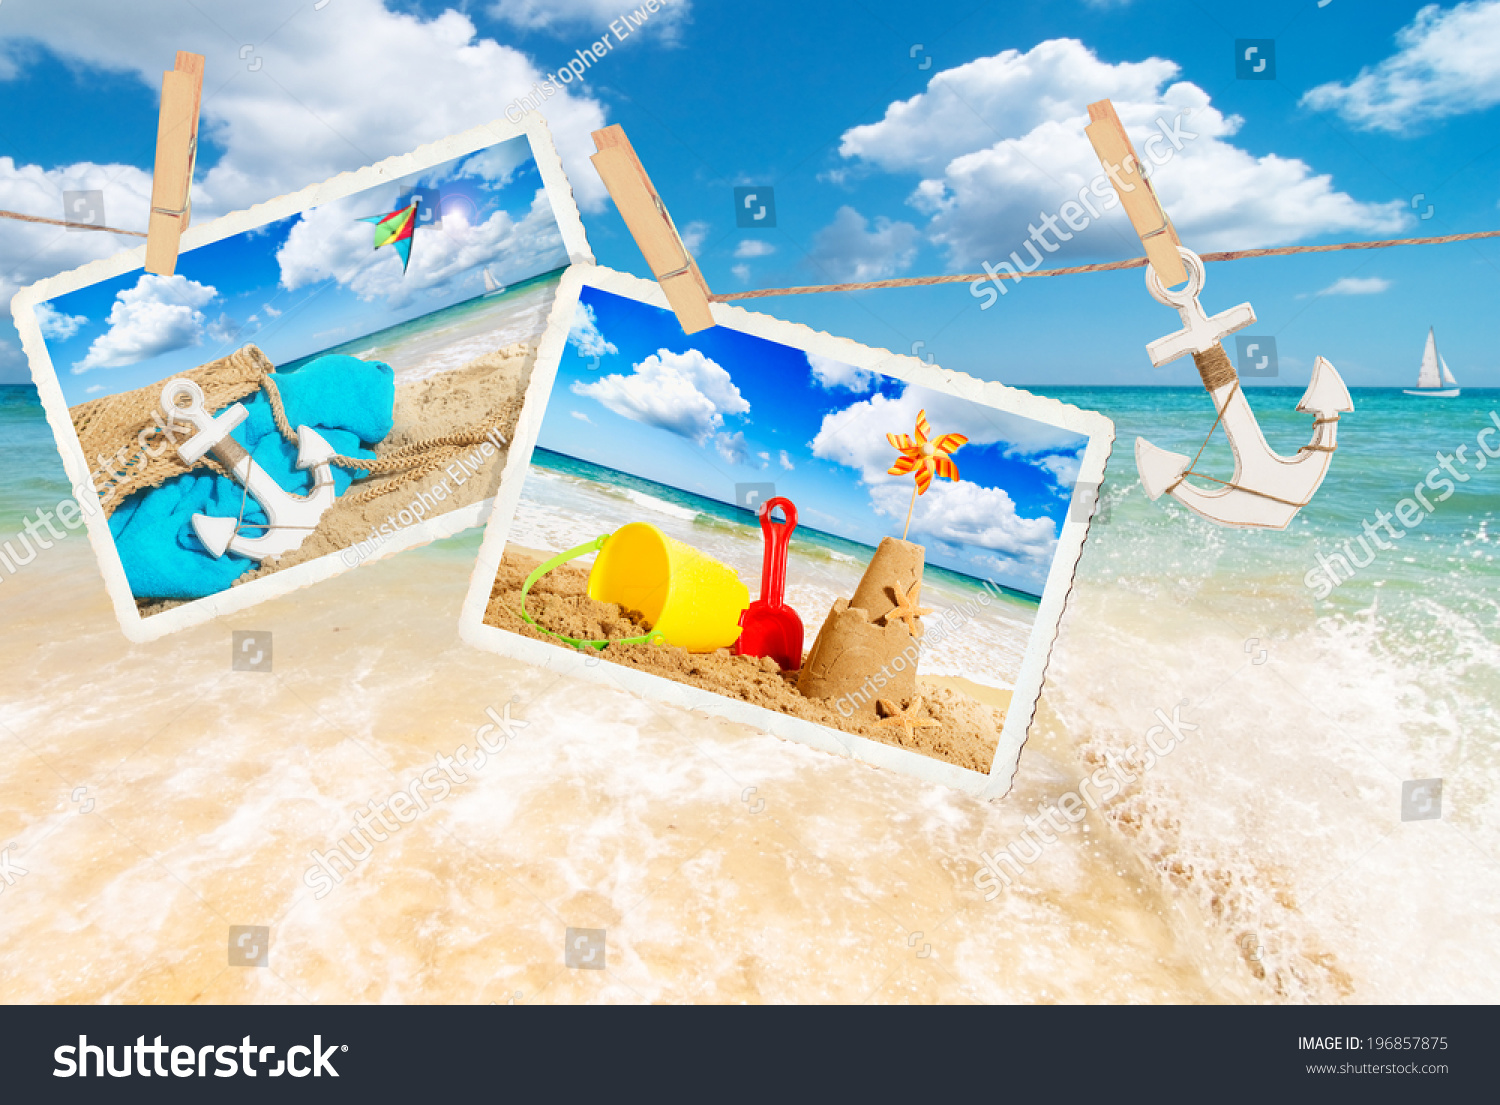 Summer Holiday Postcards Against Beach Scene Stock Photo 196857875 ...